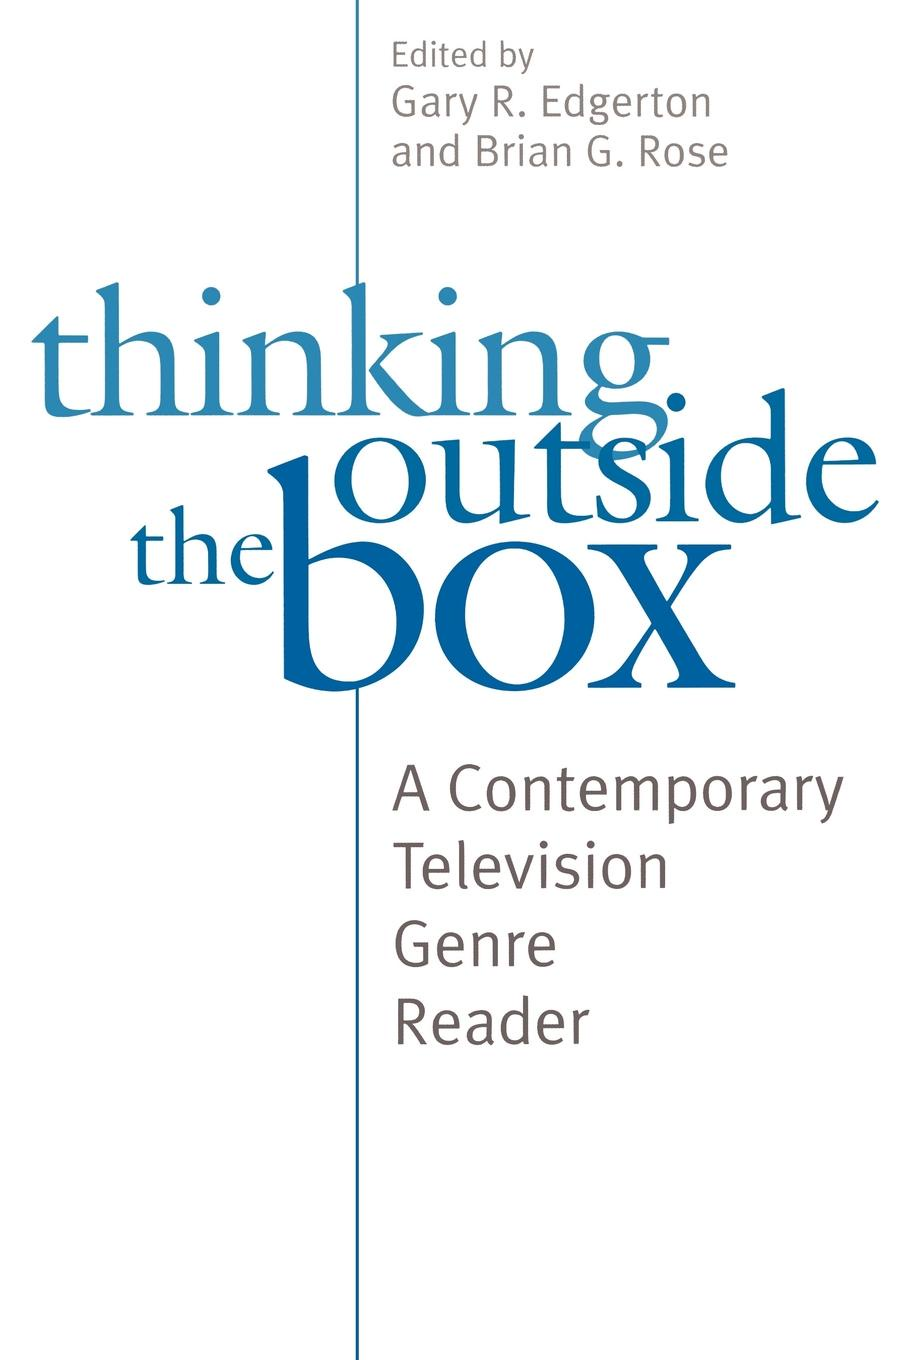 Thinking Outside the Box. A Contemporary Television Genre Reader